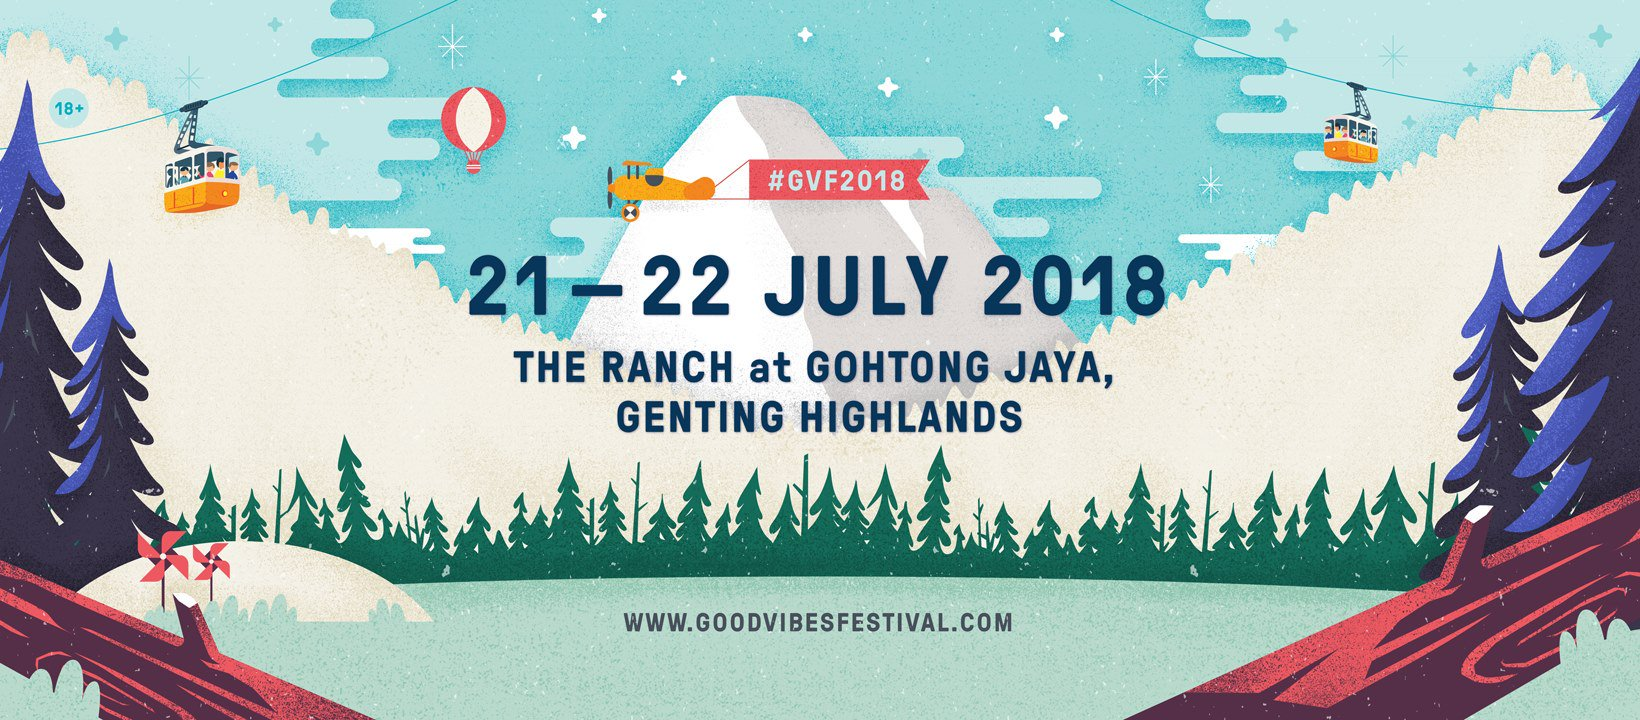 Image from Good Vibes Festival/Facebook